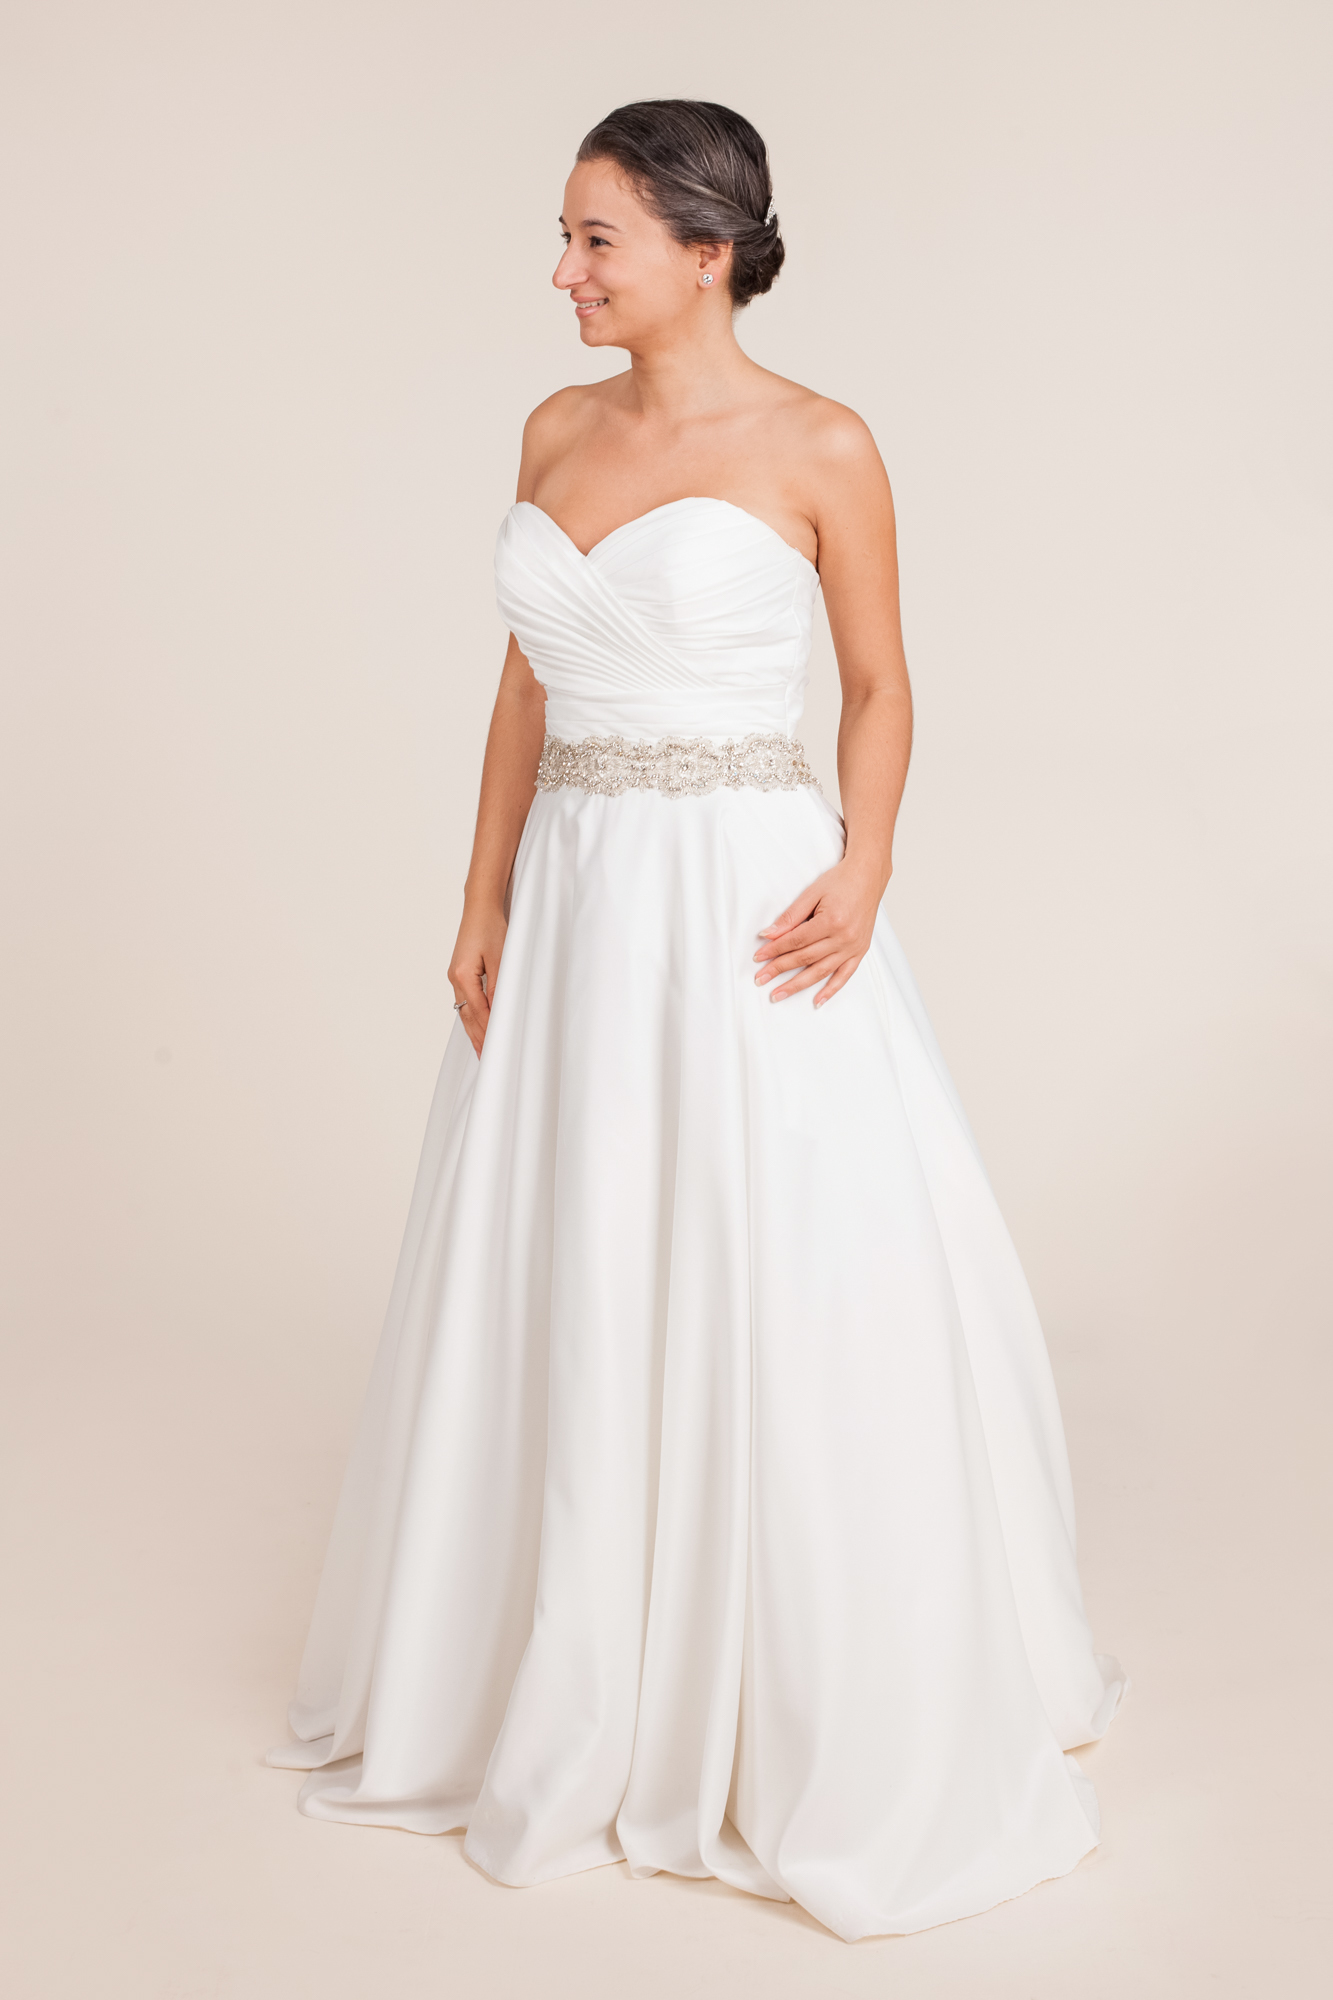 Allure bridals - Unsure size 10 - $300 - (75% OFF)